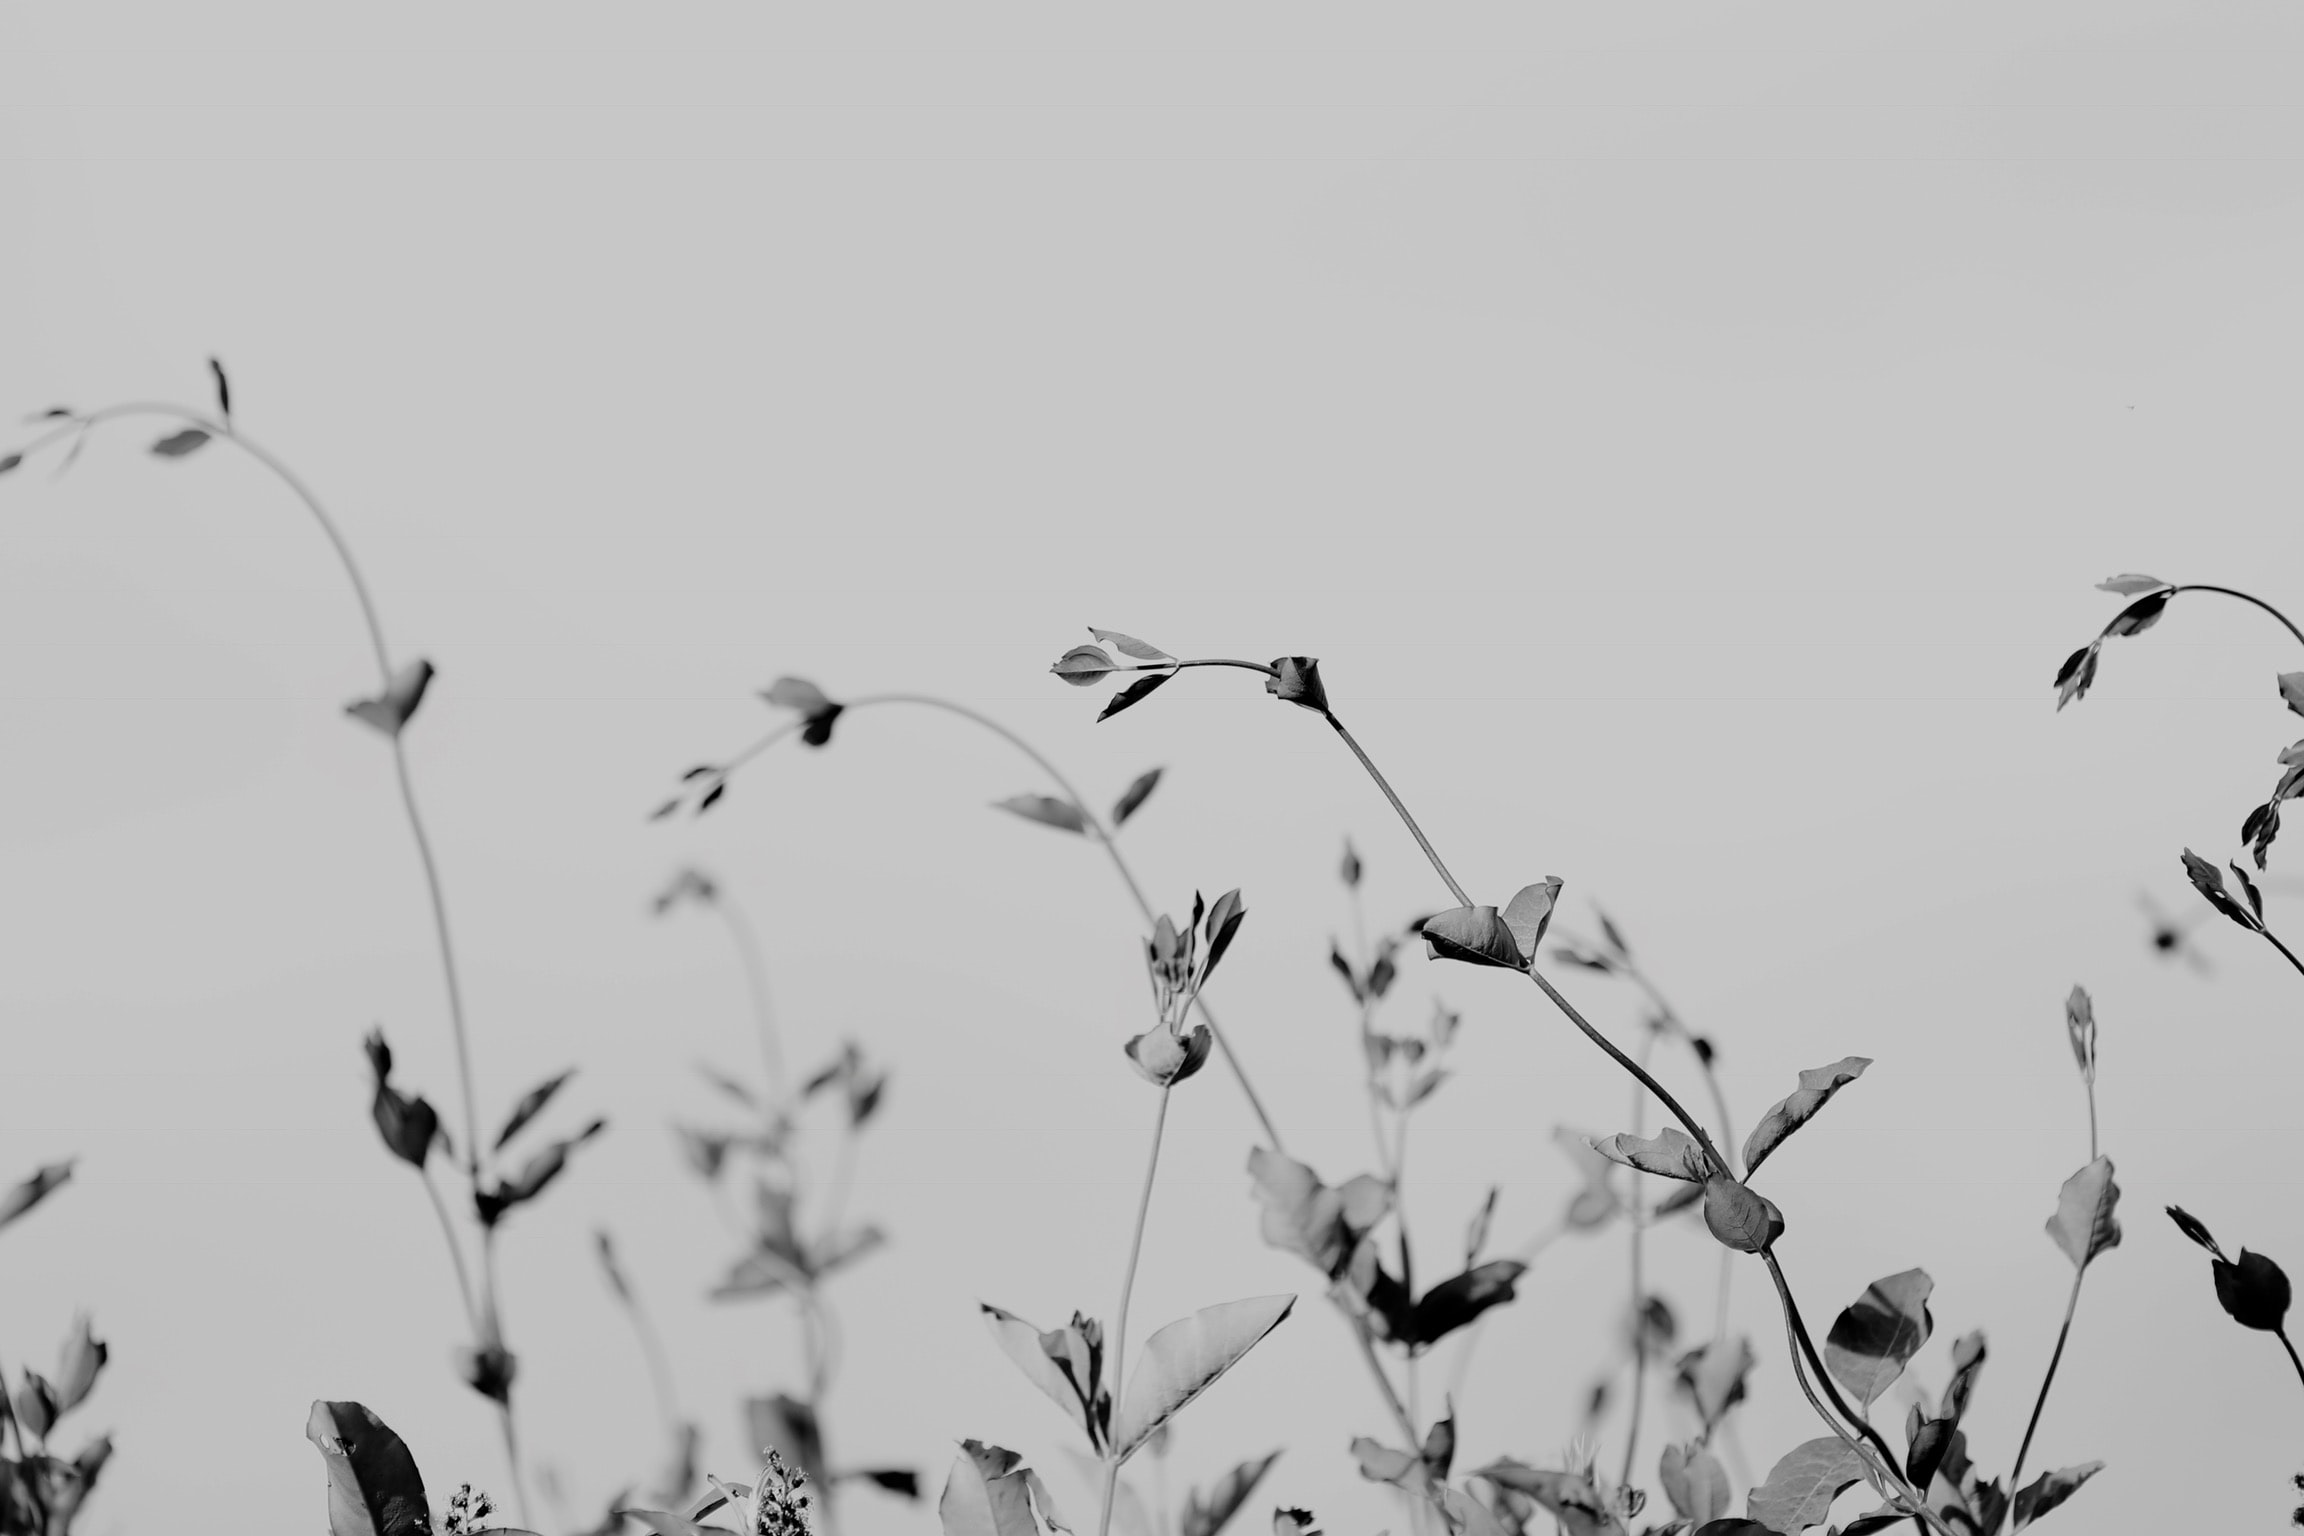 grayscale photography of plants